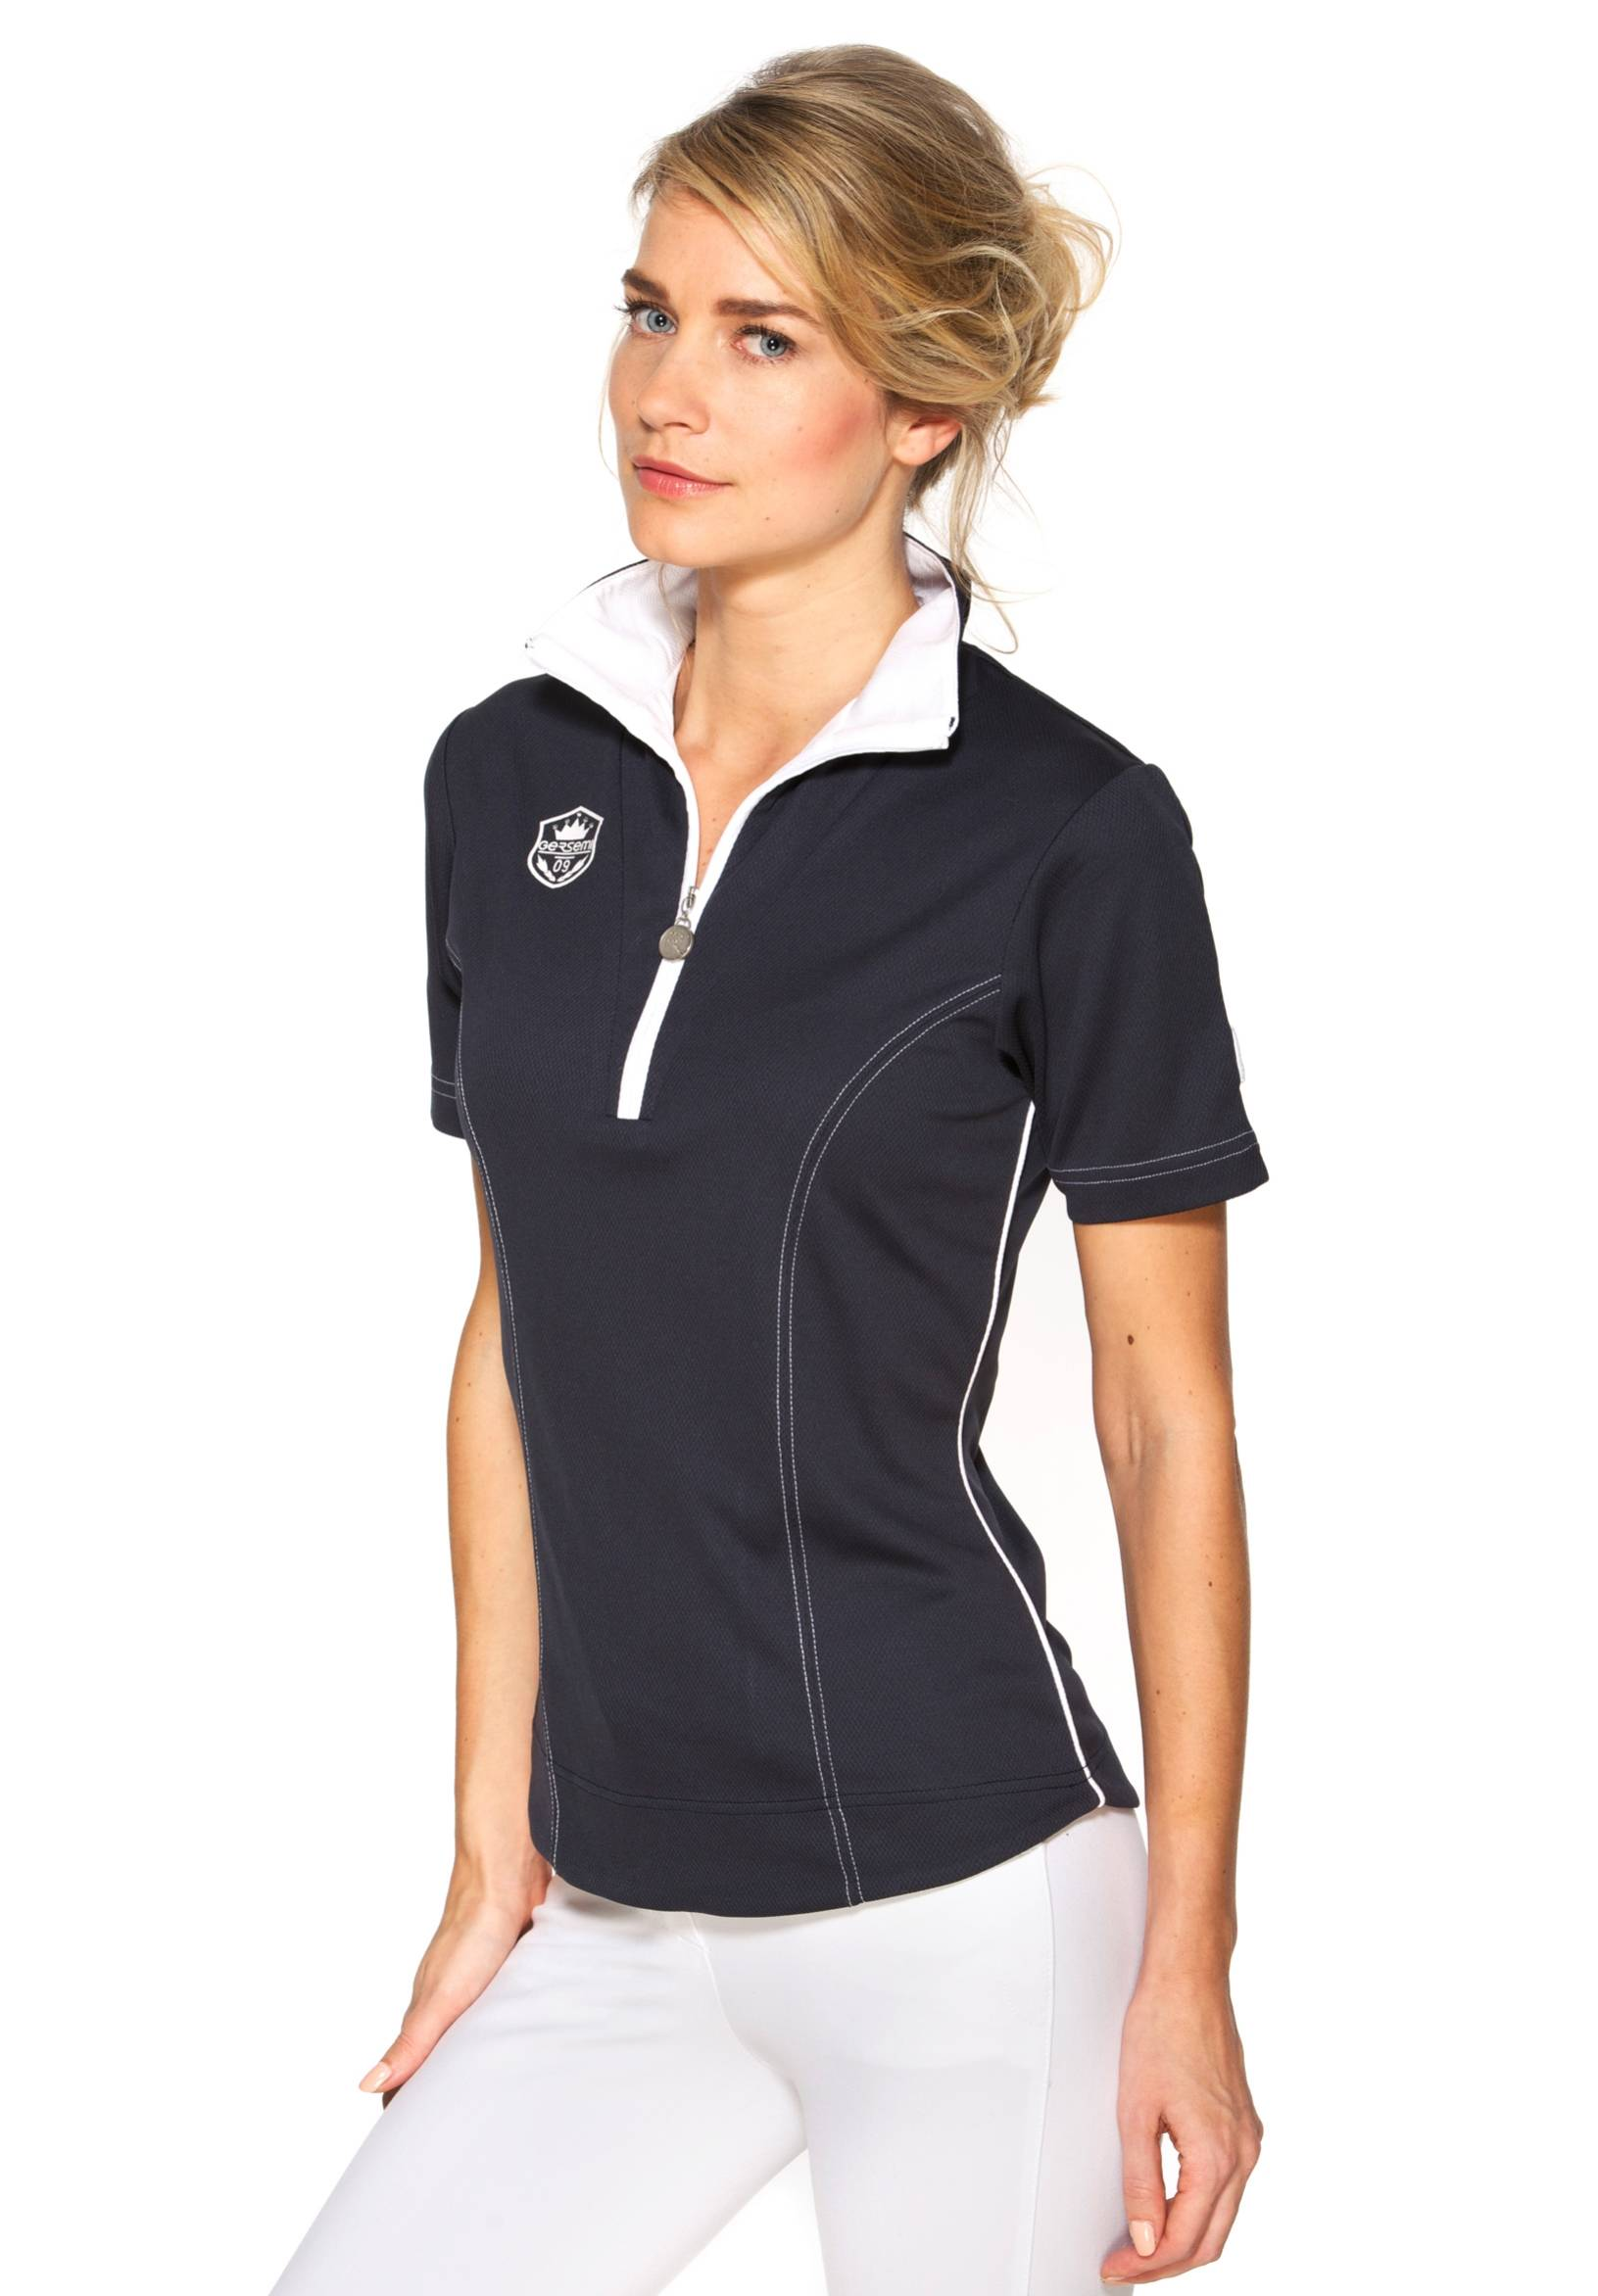 Gersemi Krista Functional 1/2 Zip Shirt - Ladies - Ink